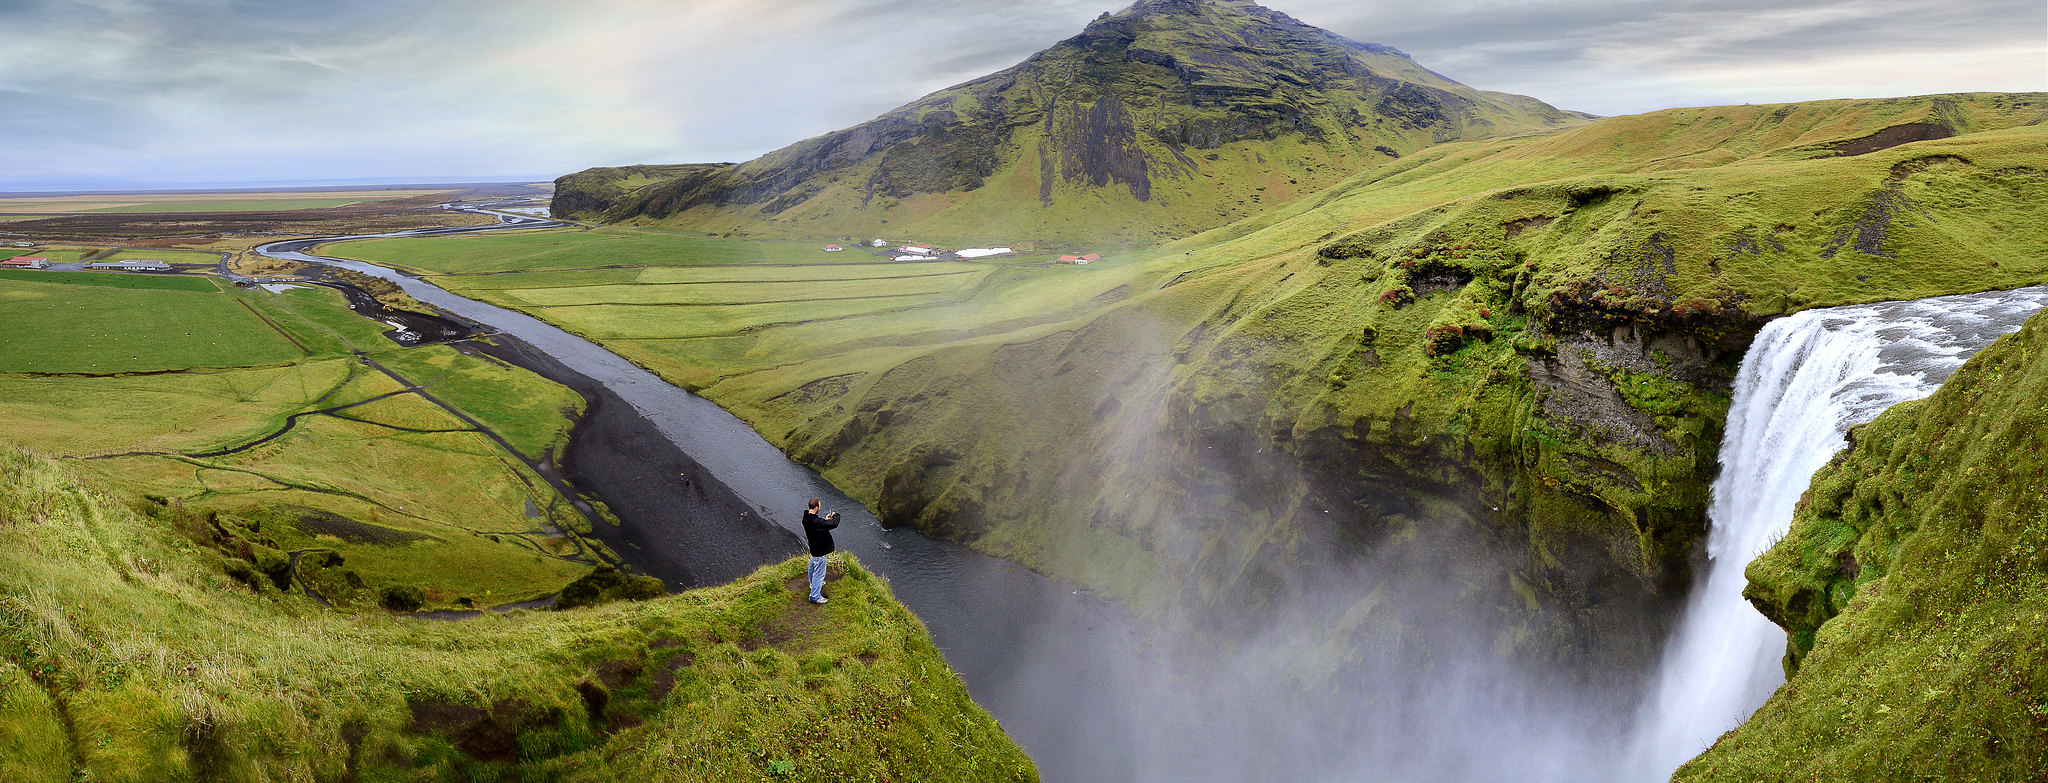 Skogafoss, Reminds you how tiny we all are